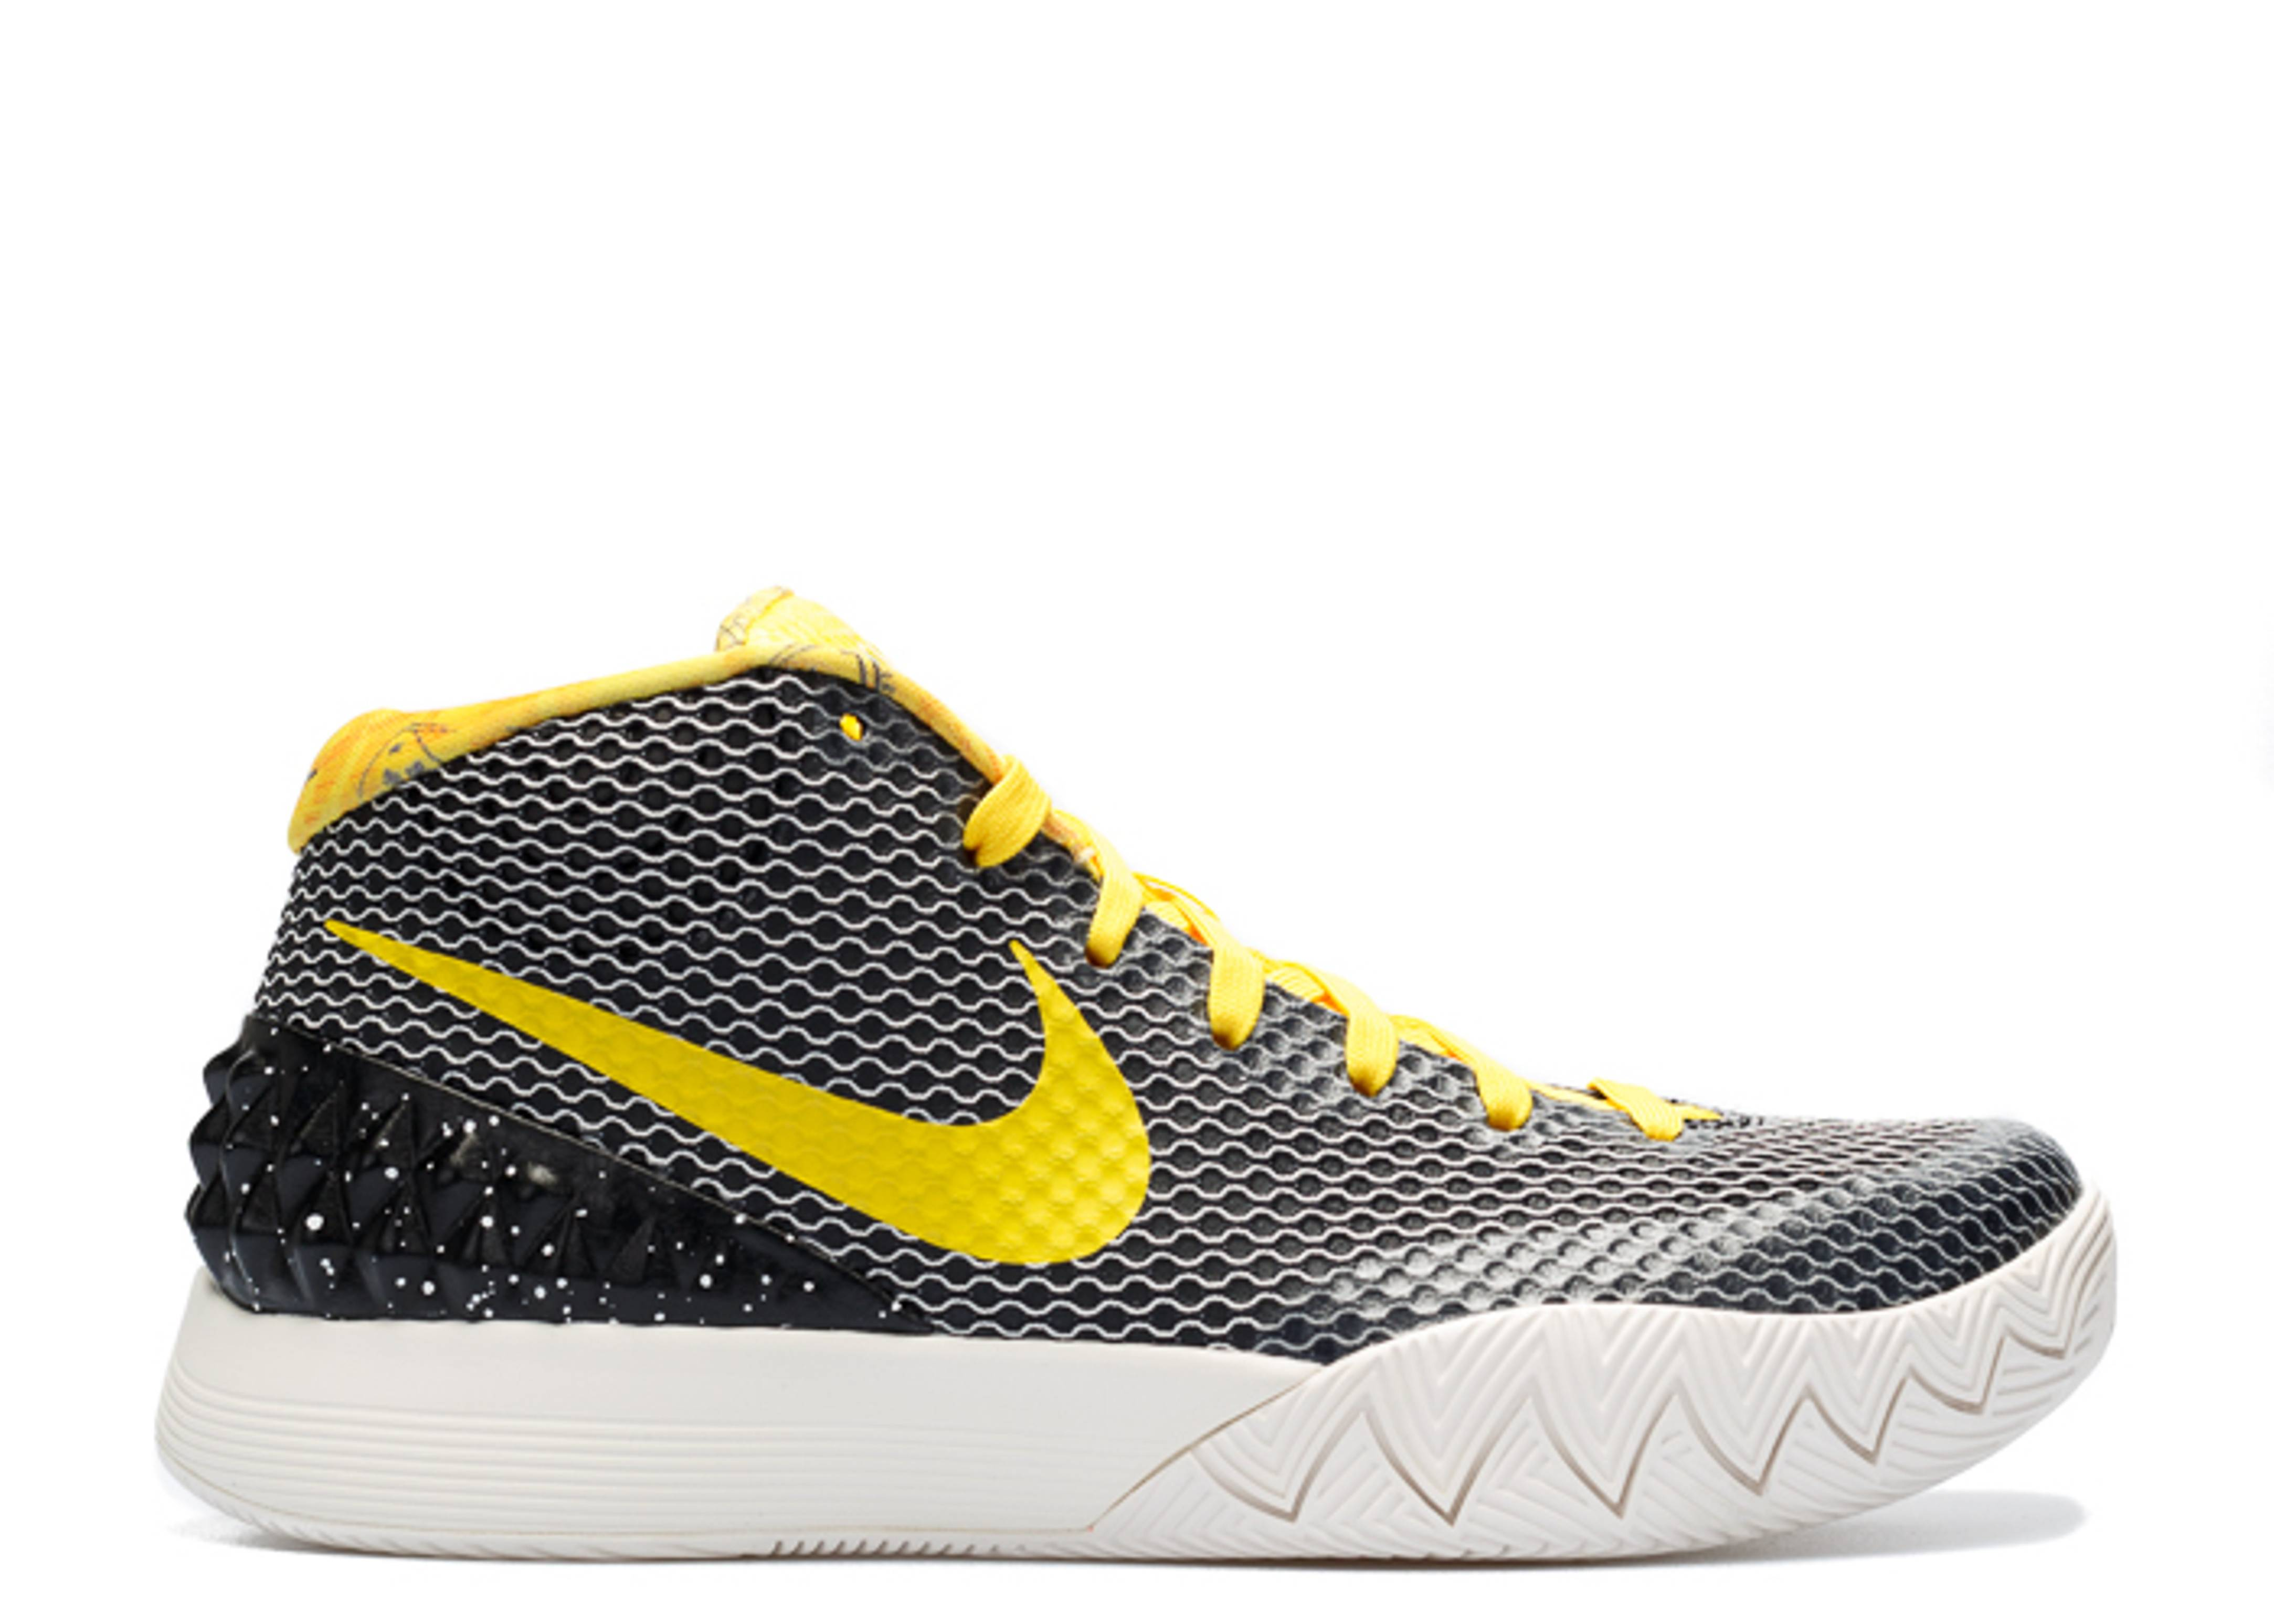 new products 4781f a6bc9 ... order free shipping nike kyrie 1 svart gull ac71a 74f53 dc724 eeeb0